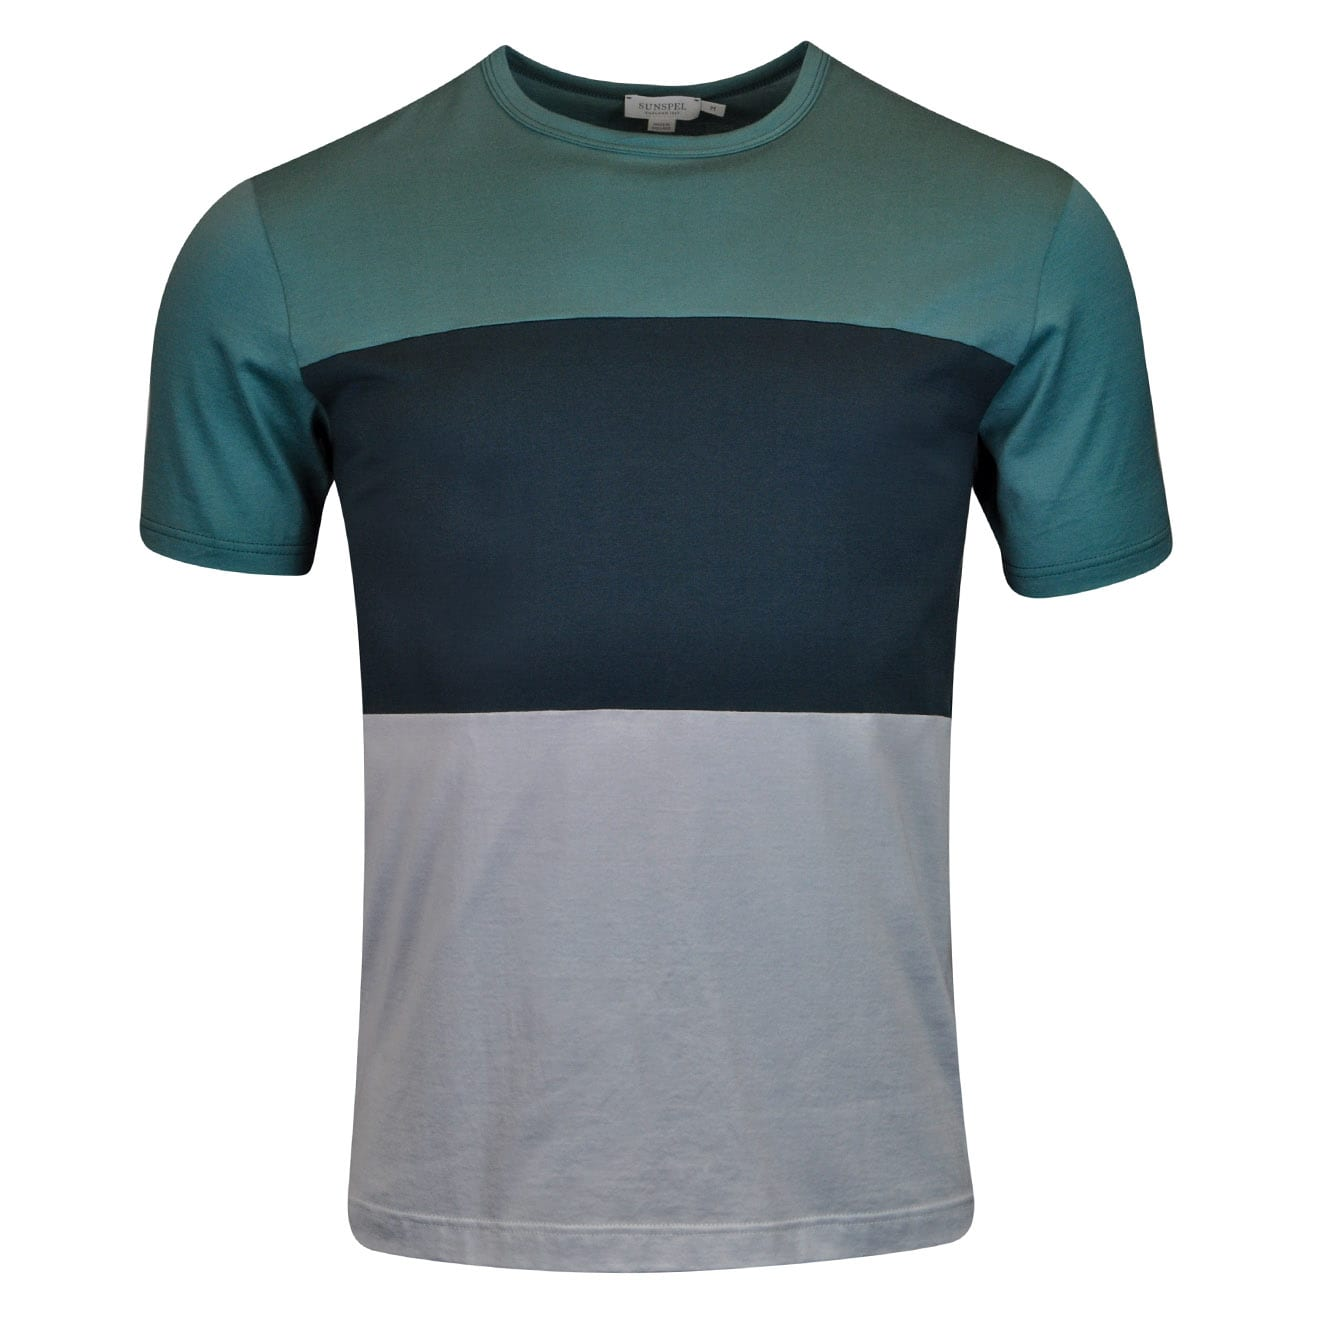 Sunspel Colour Block Crew Neck T-Shirt Green Green Ice